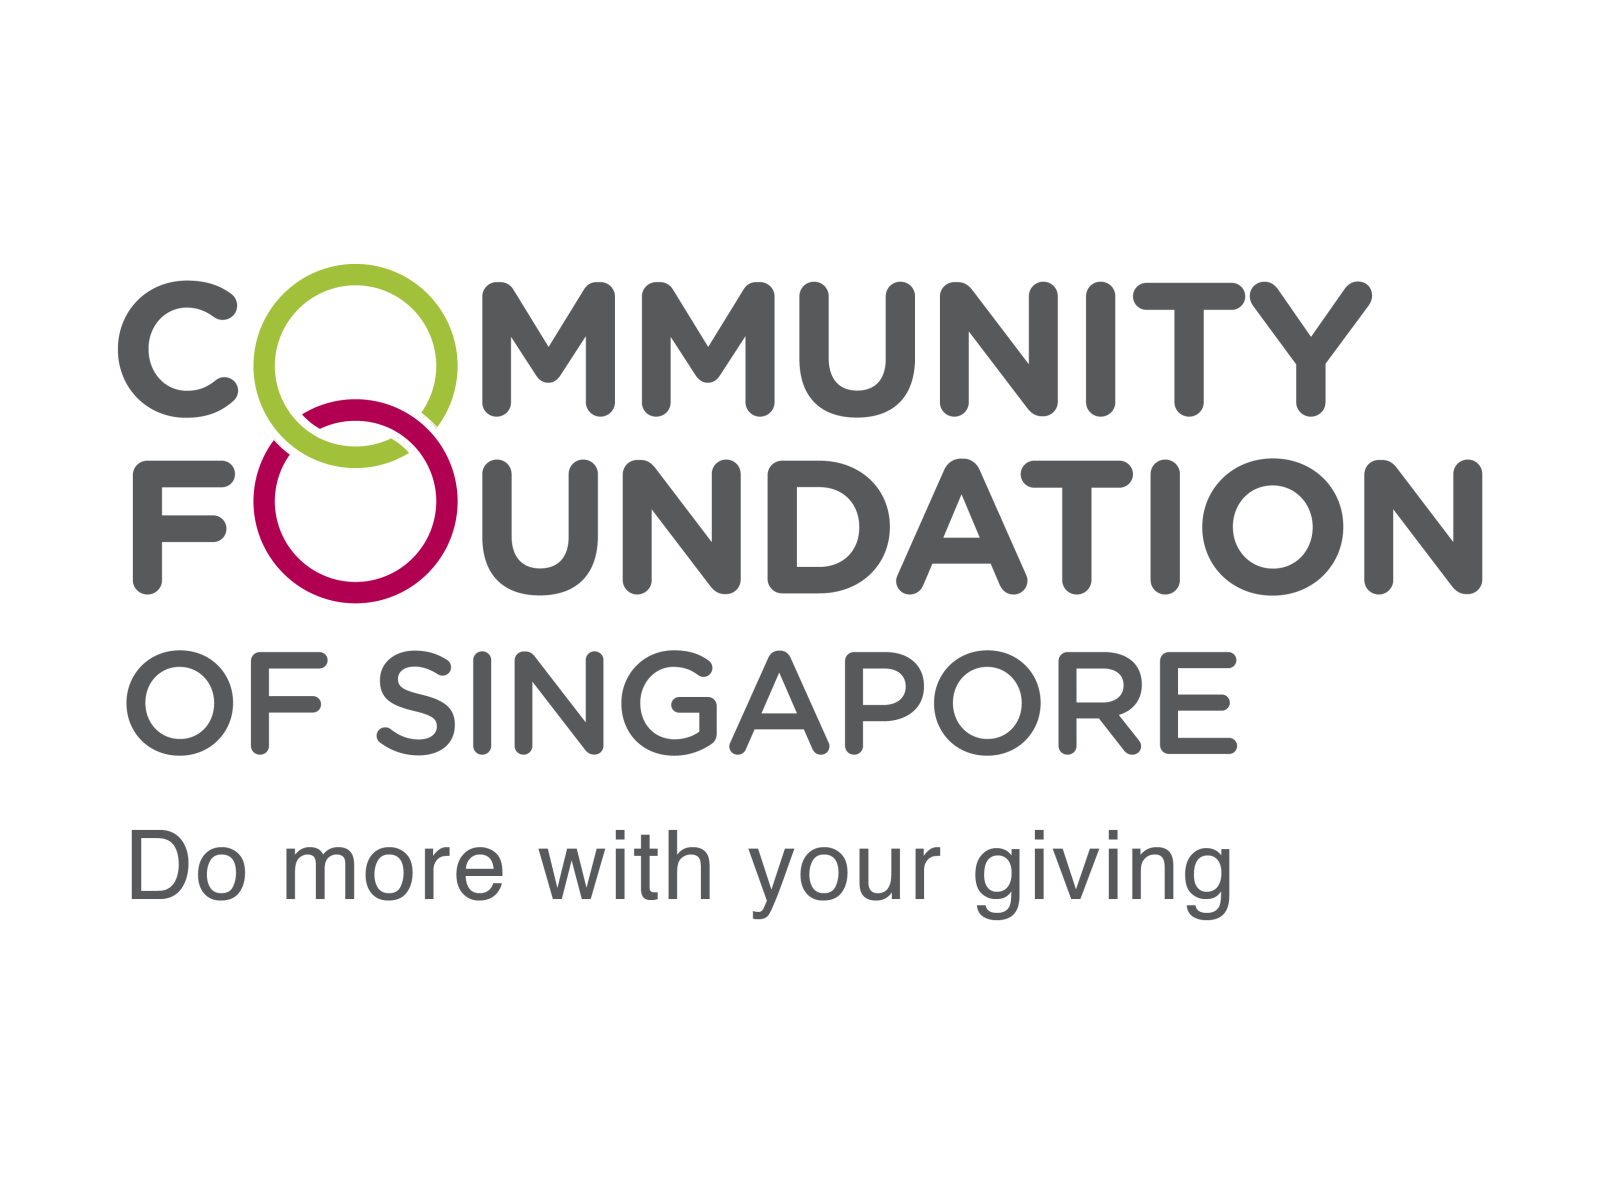 THE COMMUNITY FOUNDATION OF SINGAPORE